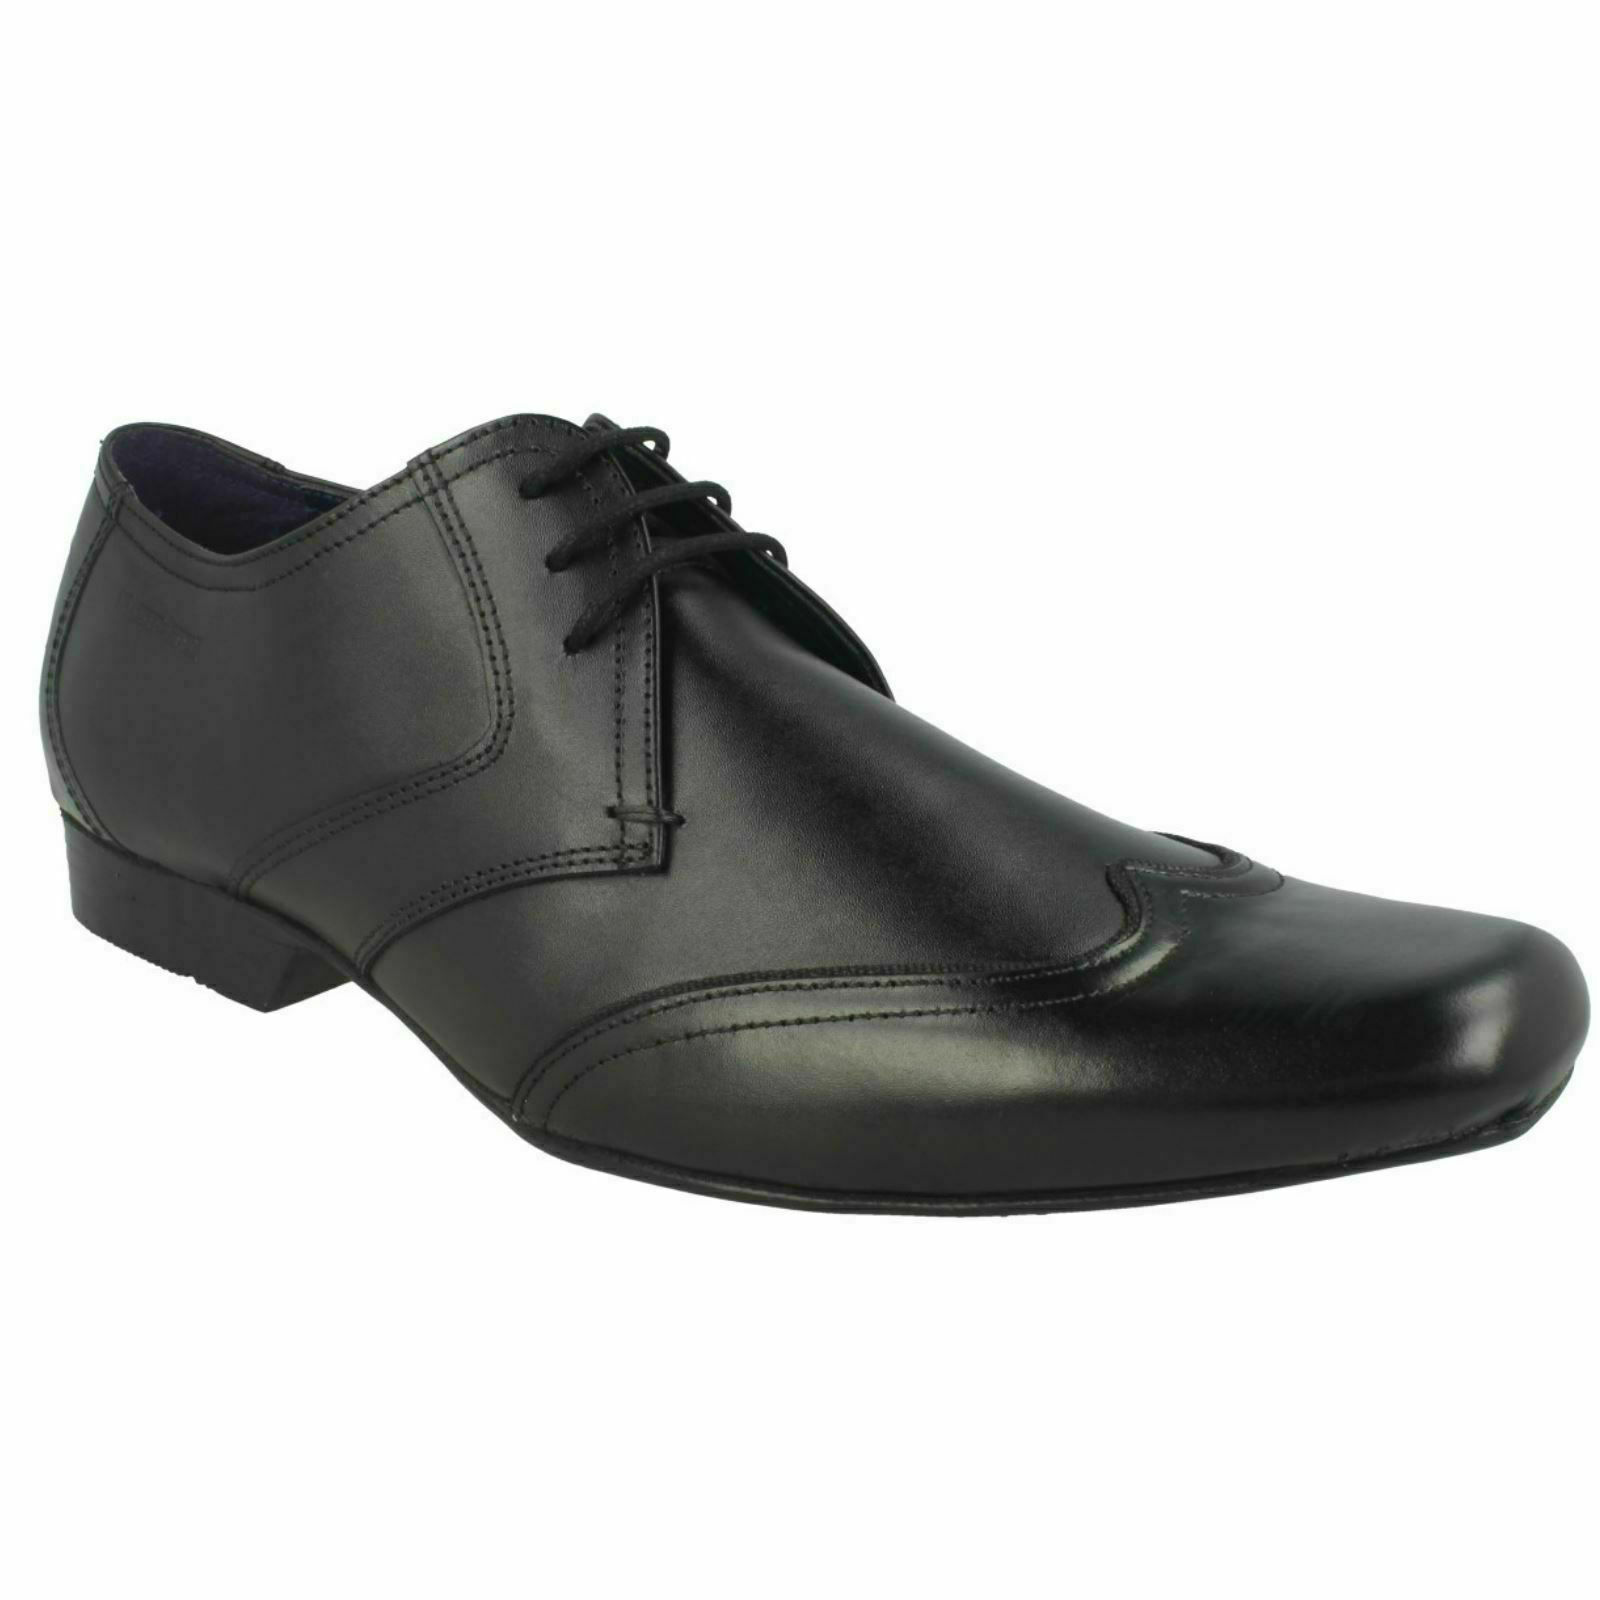 MENS LAMBRETTA 209621 LACE UP UP BLACK LEATHER FORMAL SMART WEDDING OFFICE SHOES